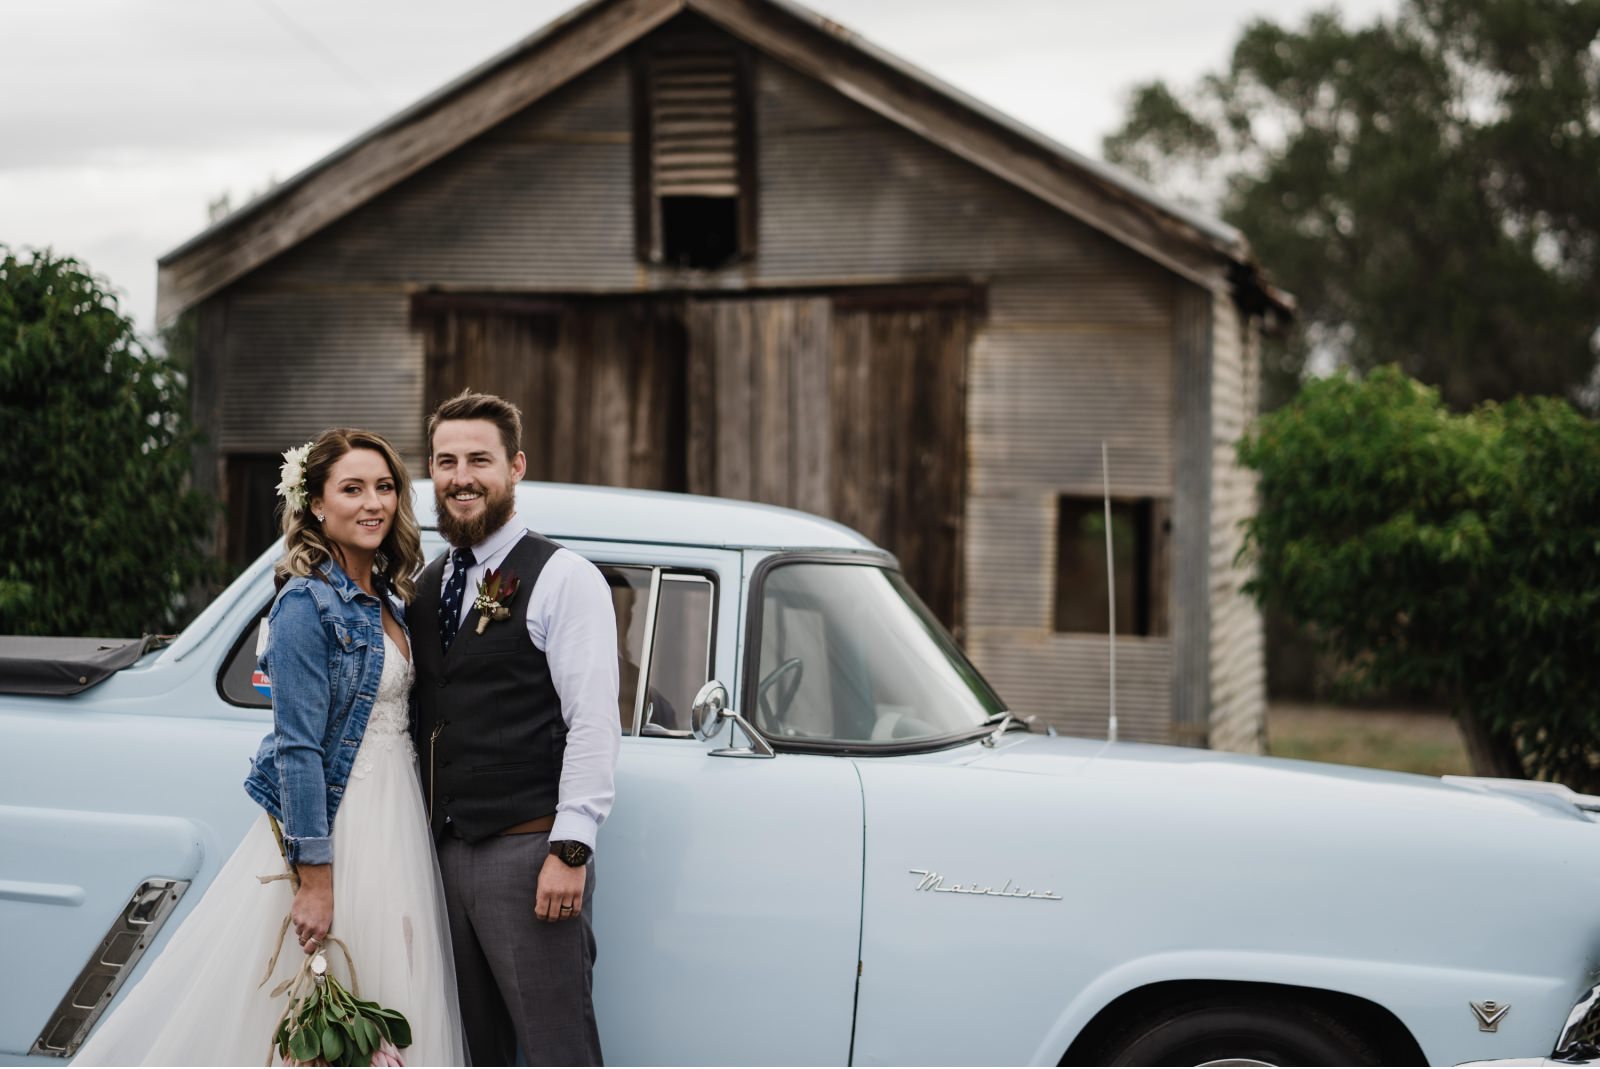 scone-wedding-photographer-upper-hunter-valley-44